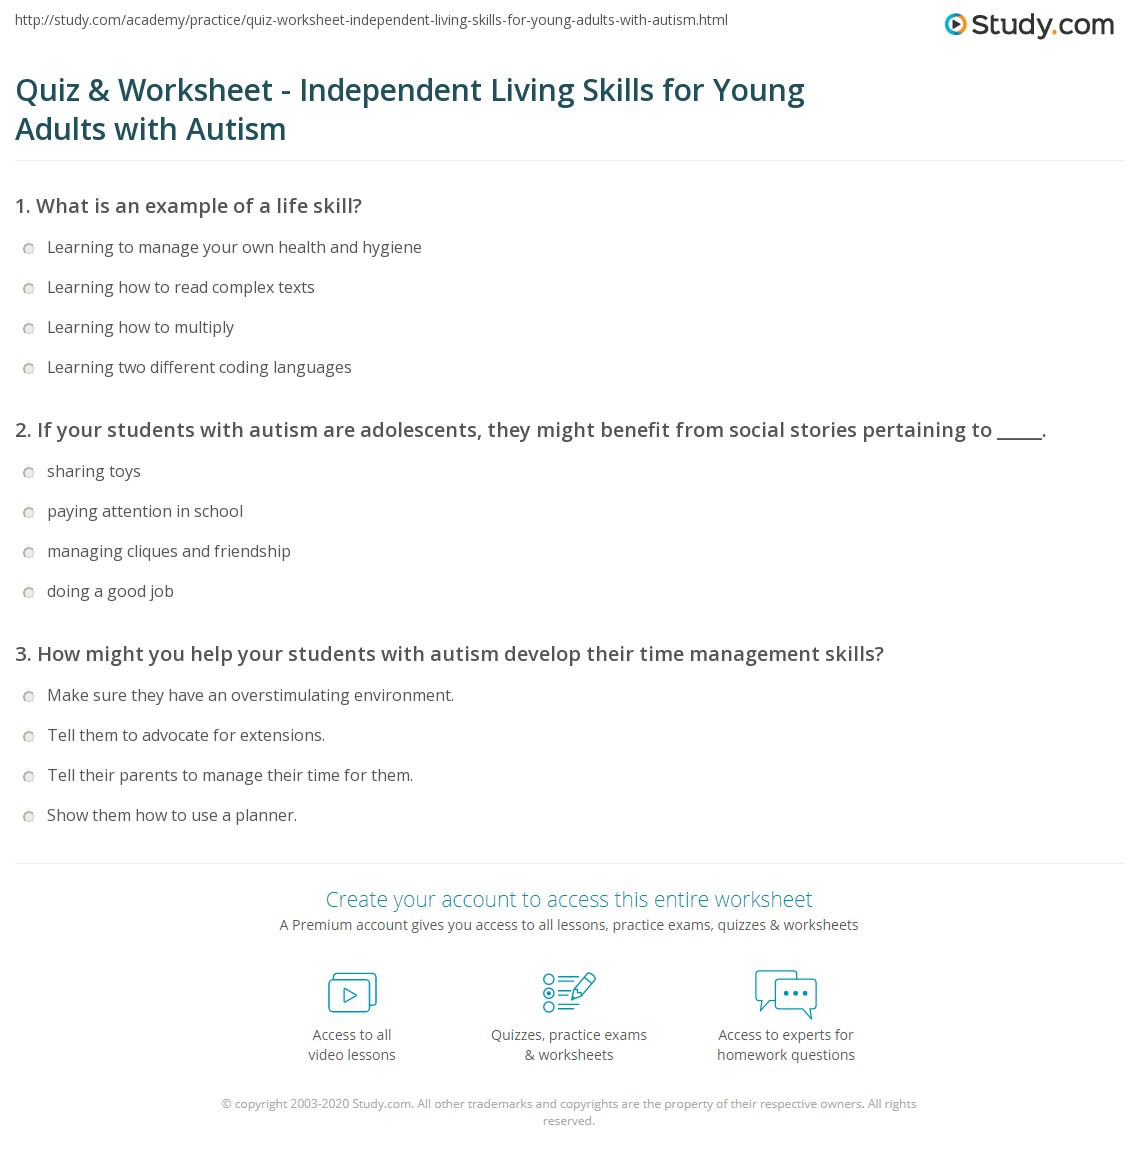 Free Independent Living Skills Worksheets Quiz Worksheet Independent Living Skills for Adults with